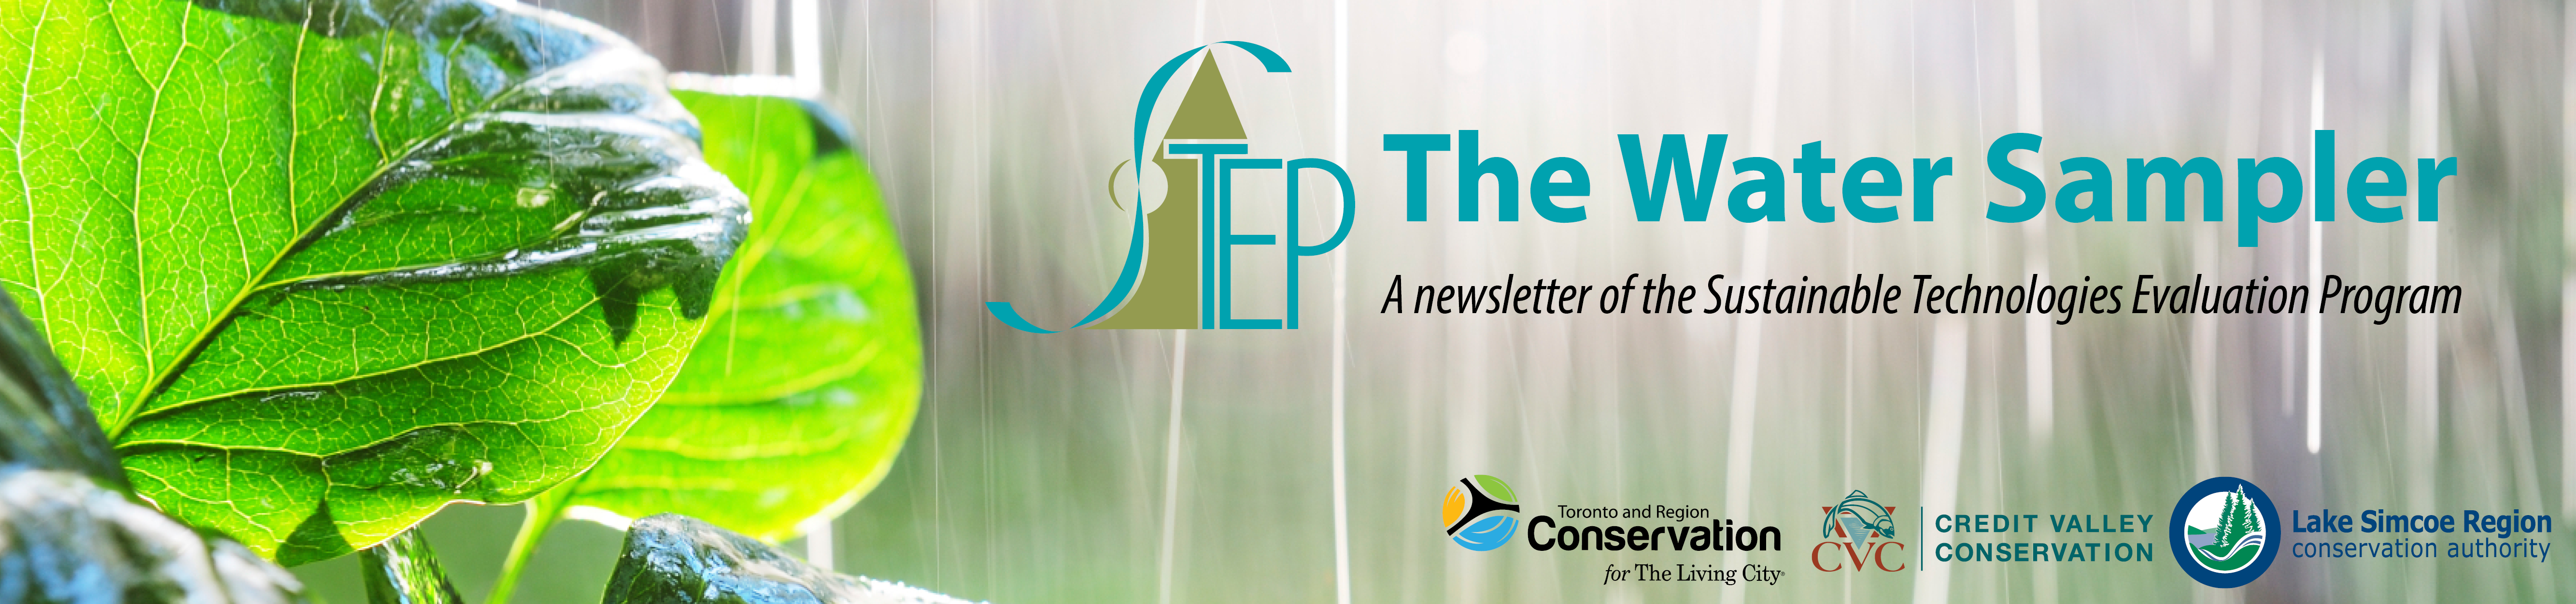 The Water Sampler - A newsletter of the Sustainable Technologies Evaluation Program